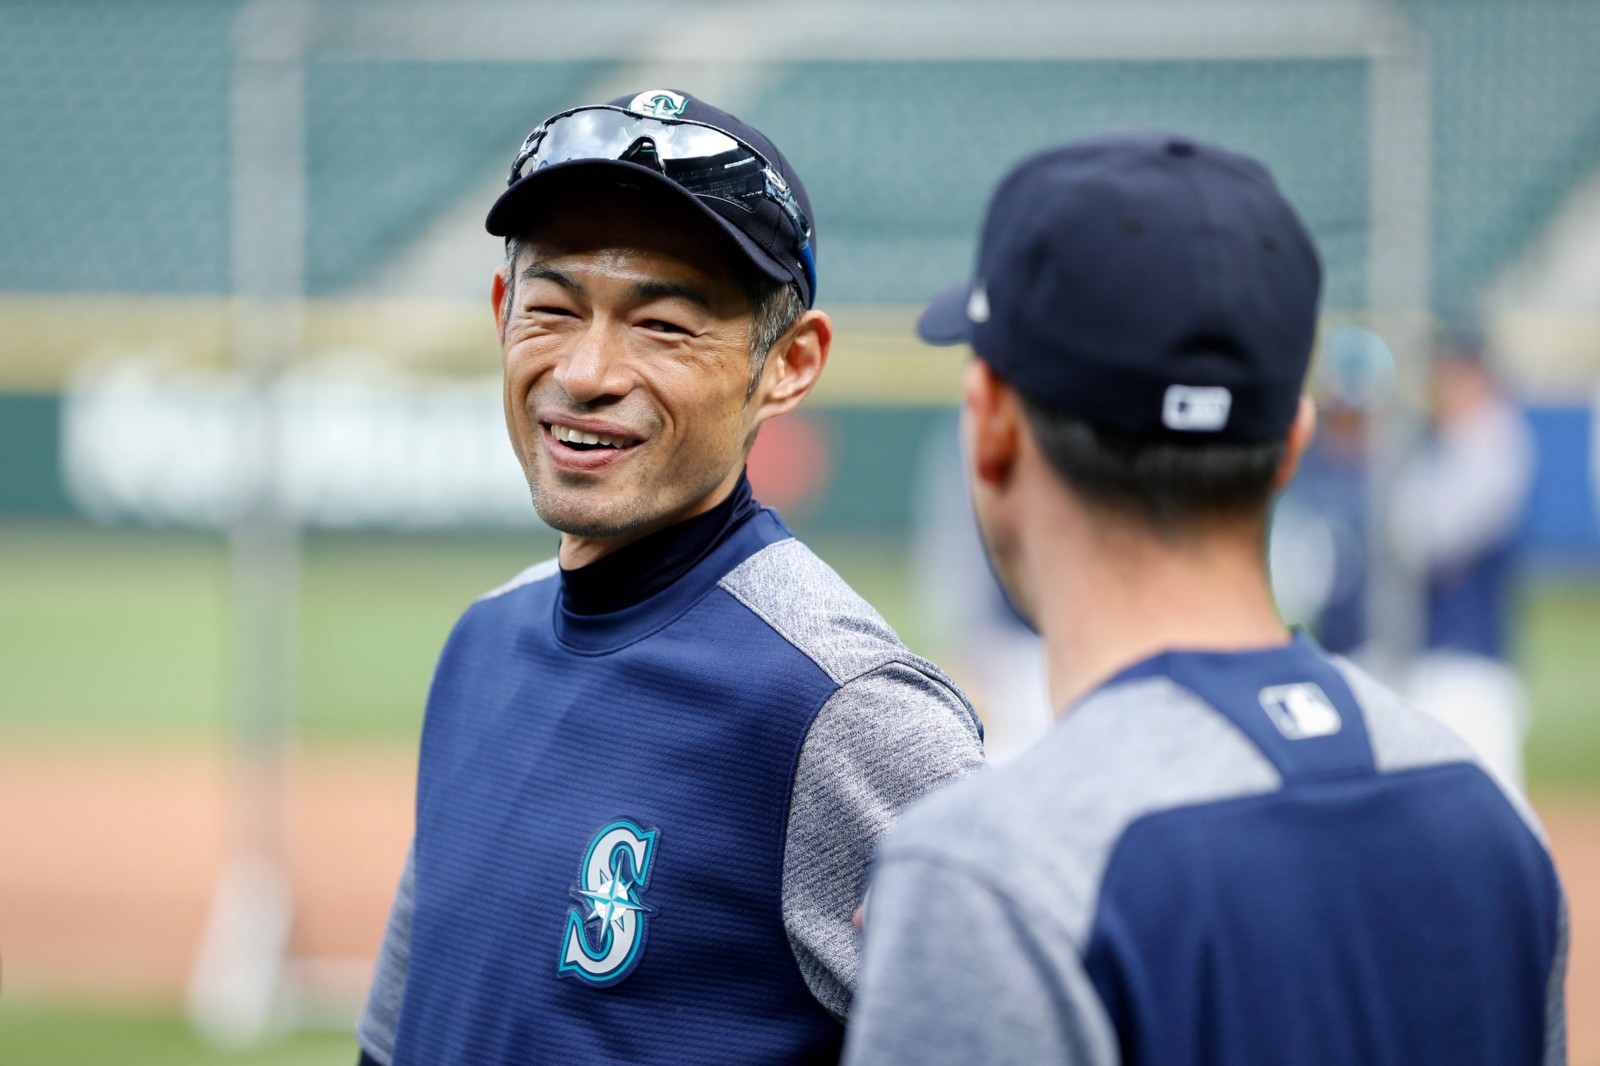 Ichiro is transitioning into a front office role with the Mariners